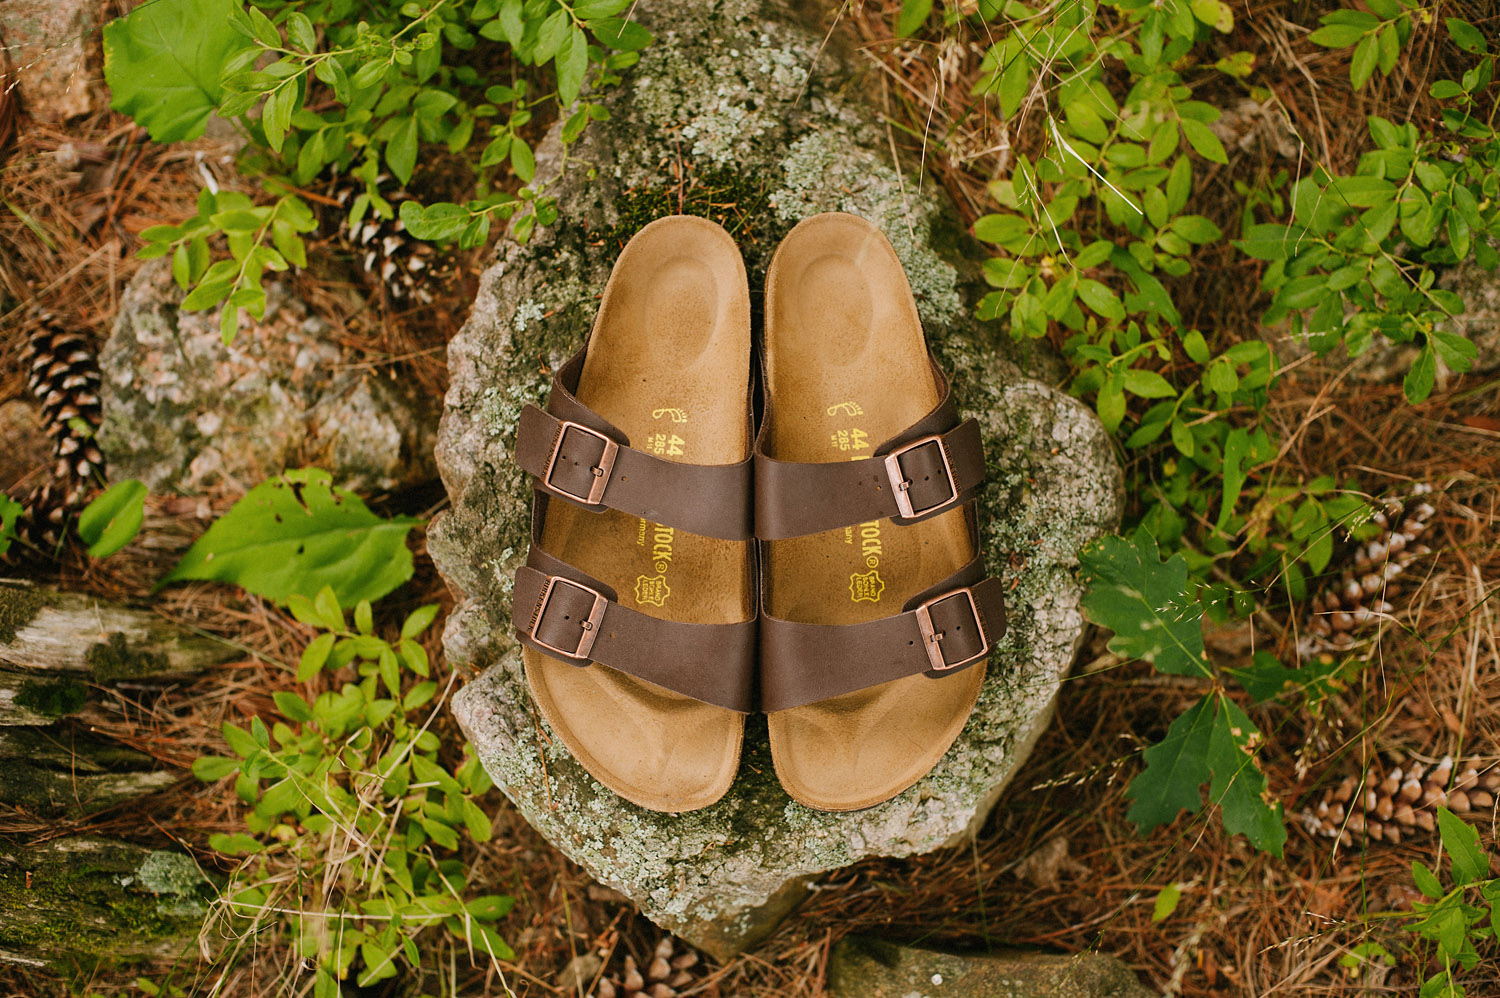 groom's birkenstocks for Muskoka camp wedding